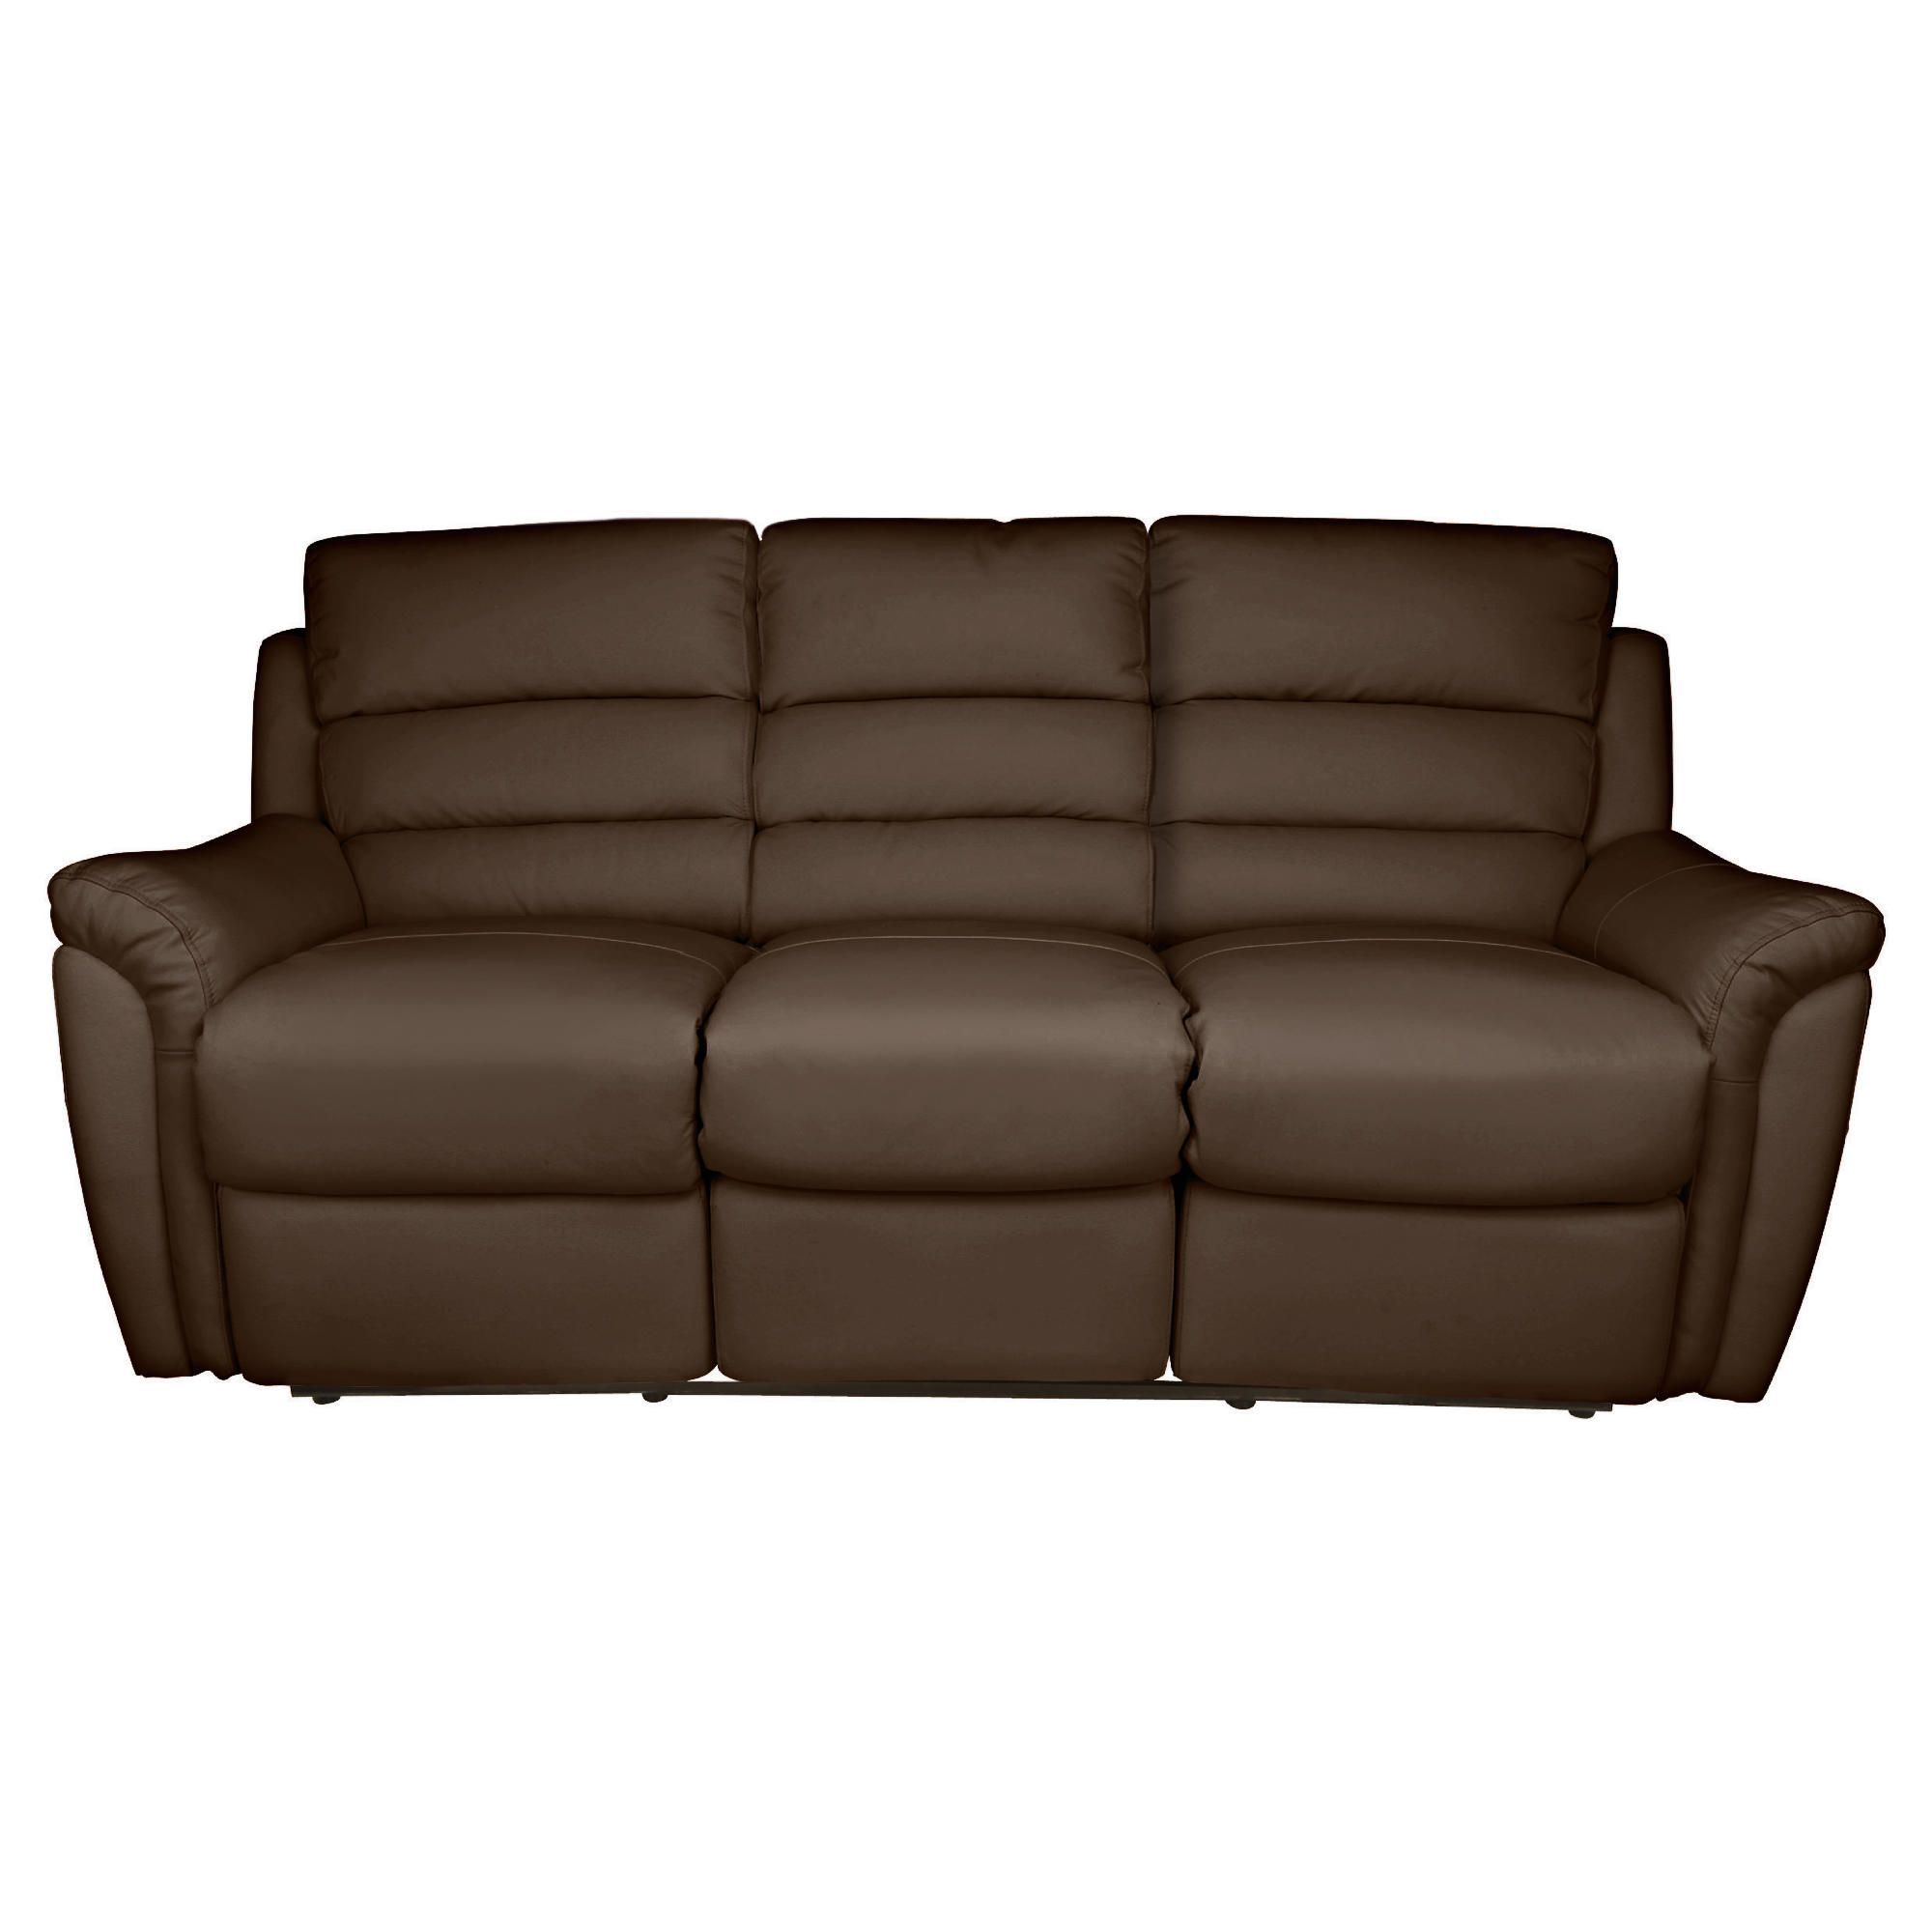 Chloe Large Recliner Sofa Leather, Brown at Tescos Direct